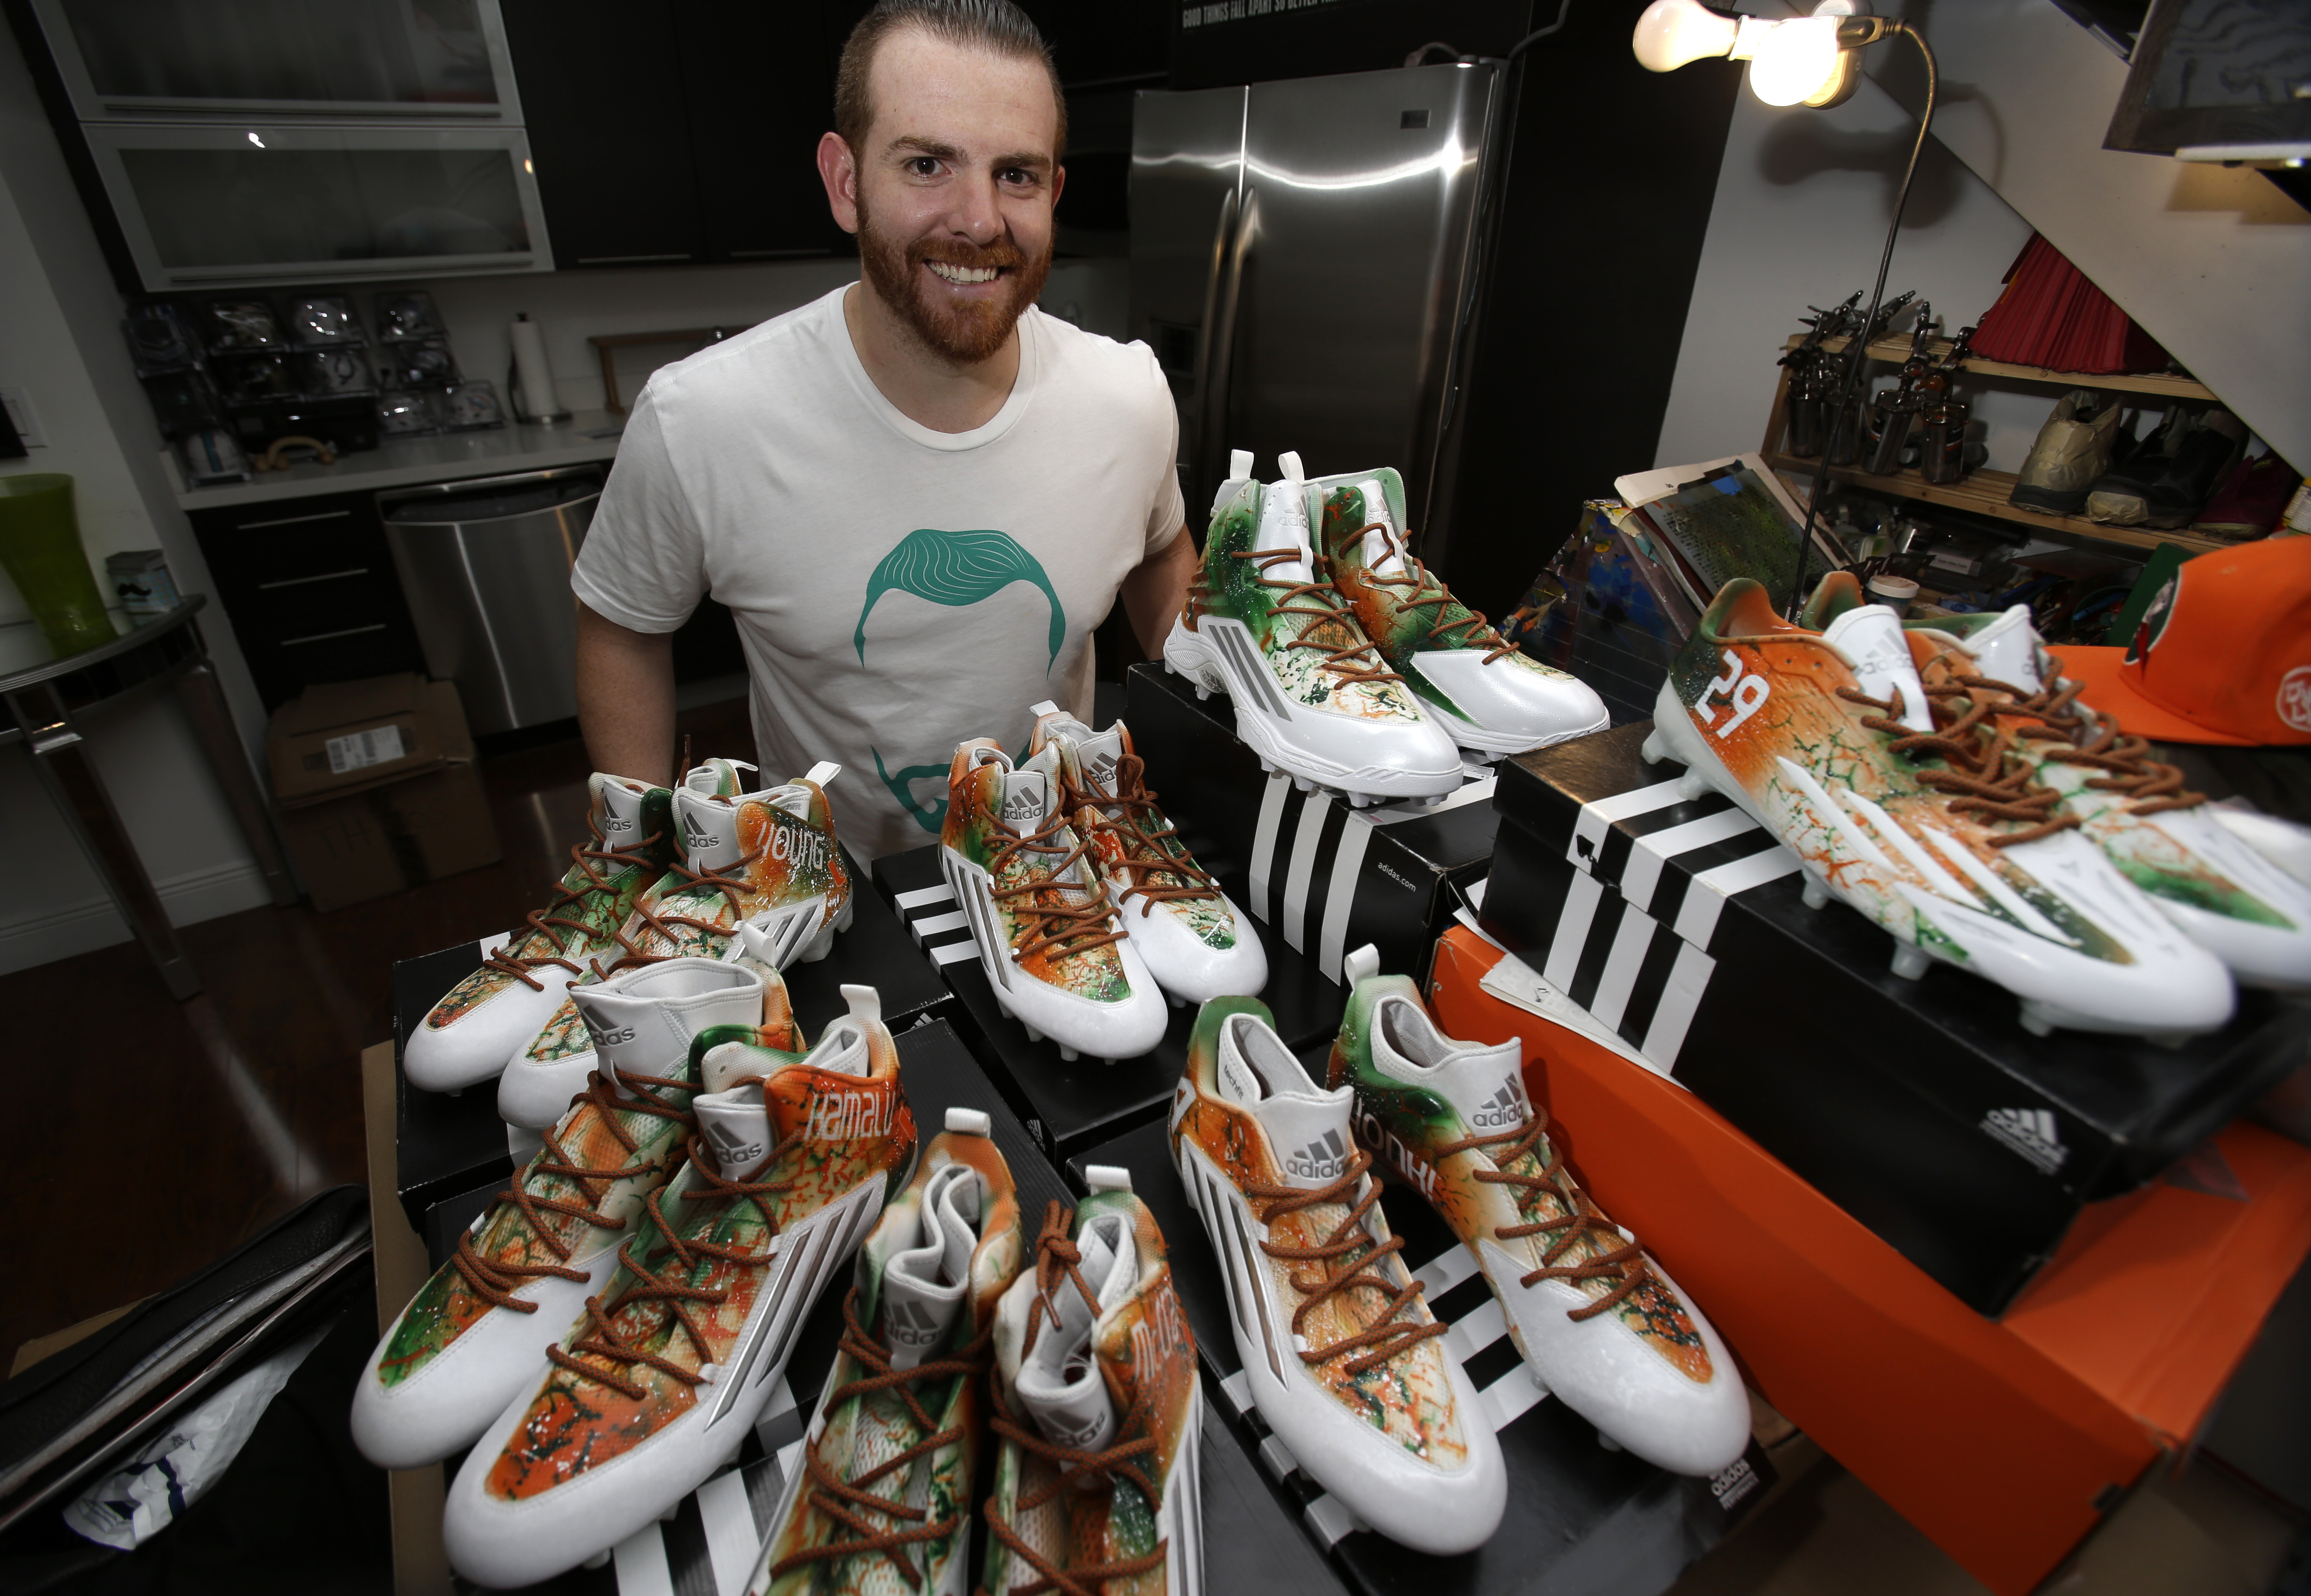 In this photo taken Tuesday, Sept. 15, 2015, Marcus Rivero poses with some of the cleats he painted for Miami football players at his home in Miami. Rivero put in about 400 hours painting about 120 pair of customized cleats that Miami will wear for Saturd